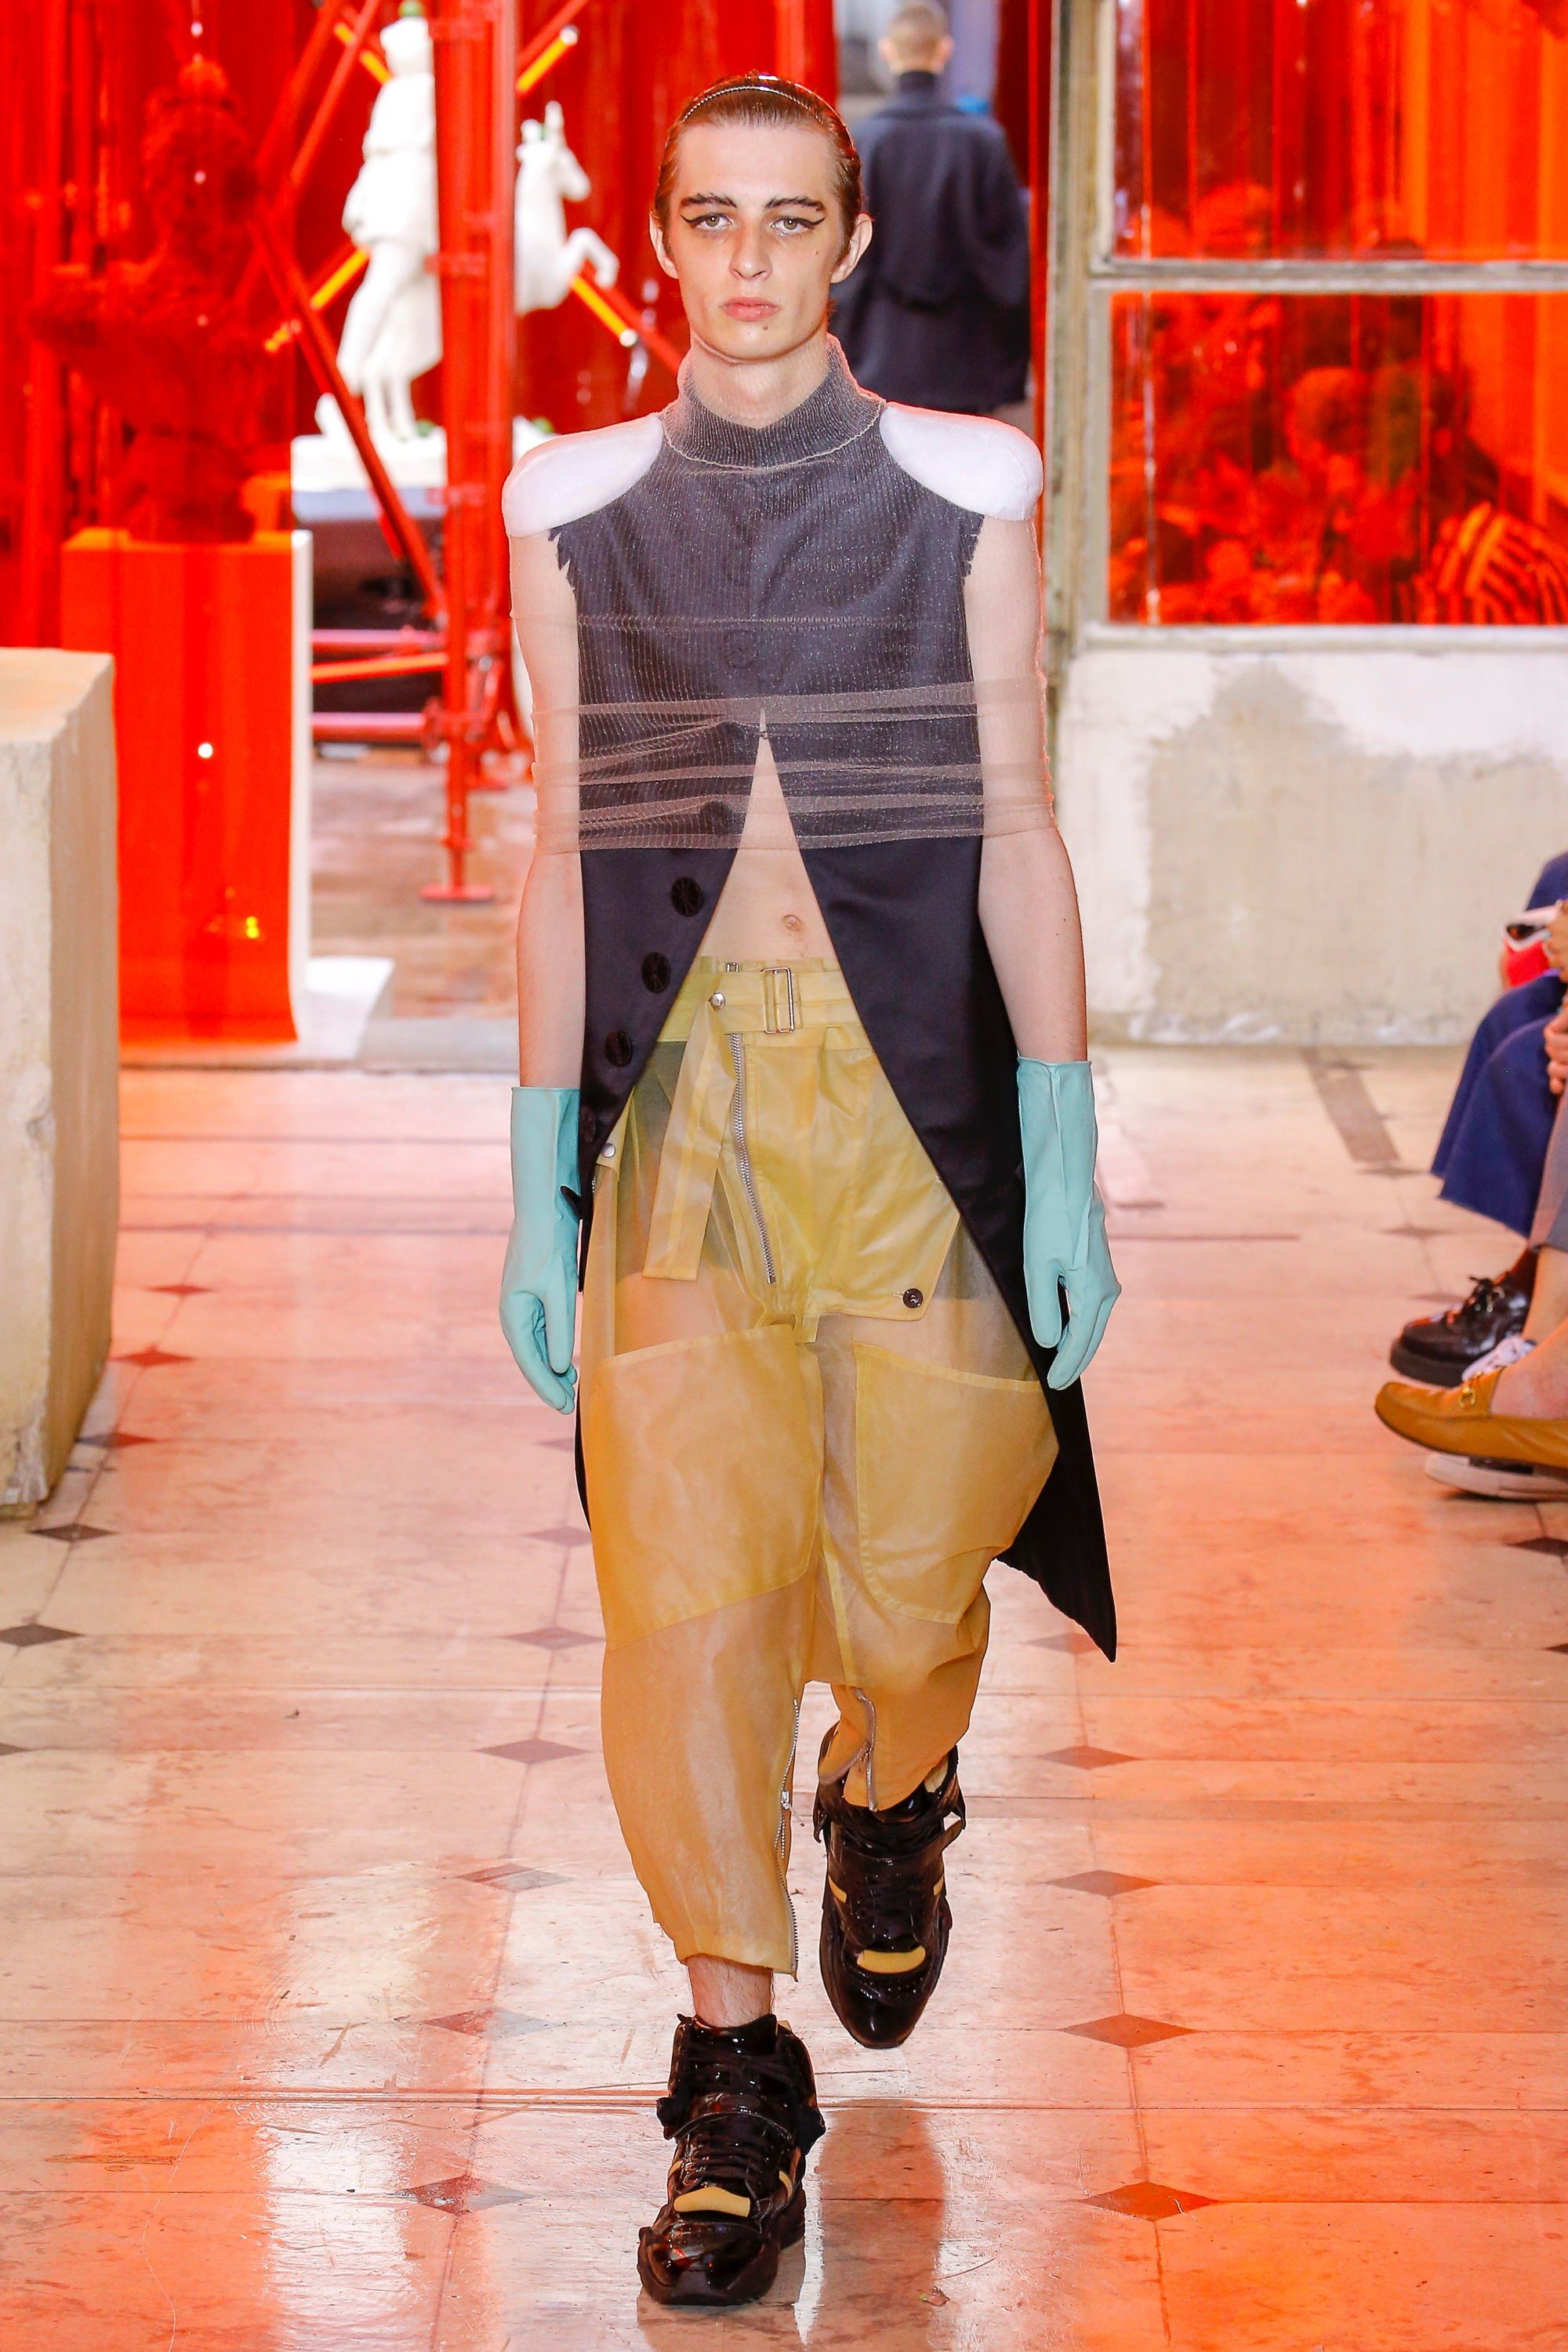 Martin maison margiela mens spring runway recommendations to wear in spring in 2019